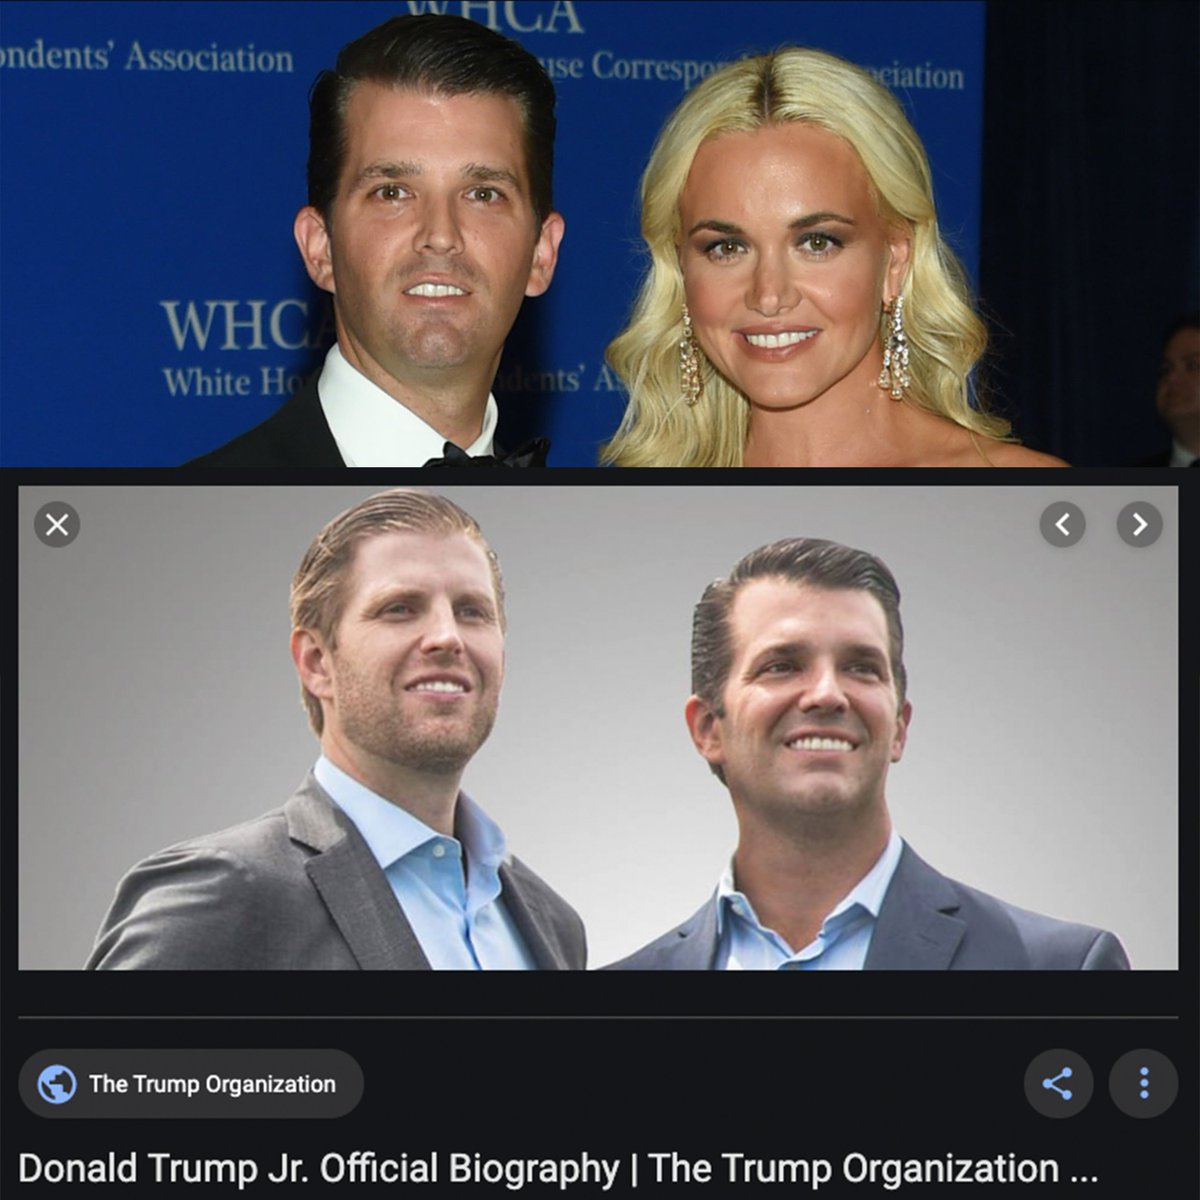 @ActualEPAFacts If @realDonaldTrump REALLY wants to go down tis road, it seems like a good opportunity to discuss how @DonaldJTrumpJr has his neck photoshopped in official photos to make it look man-sized. look at this horrible warp tool job from the Trump Org vs a candid #photoshopfails